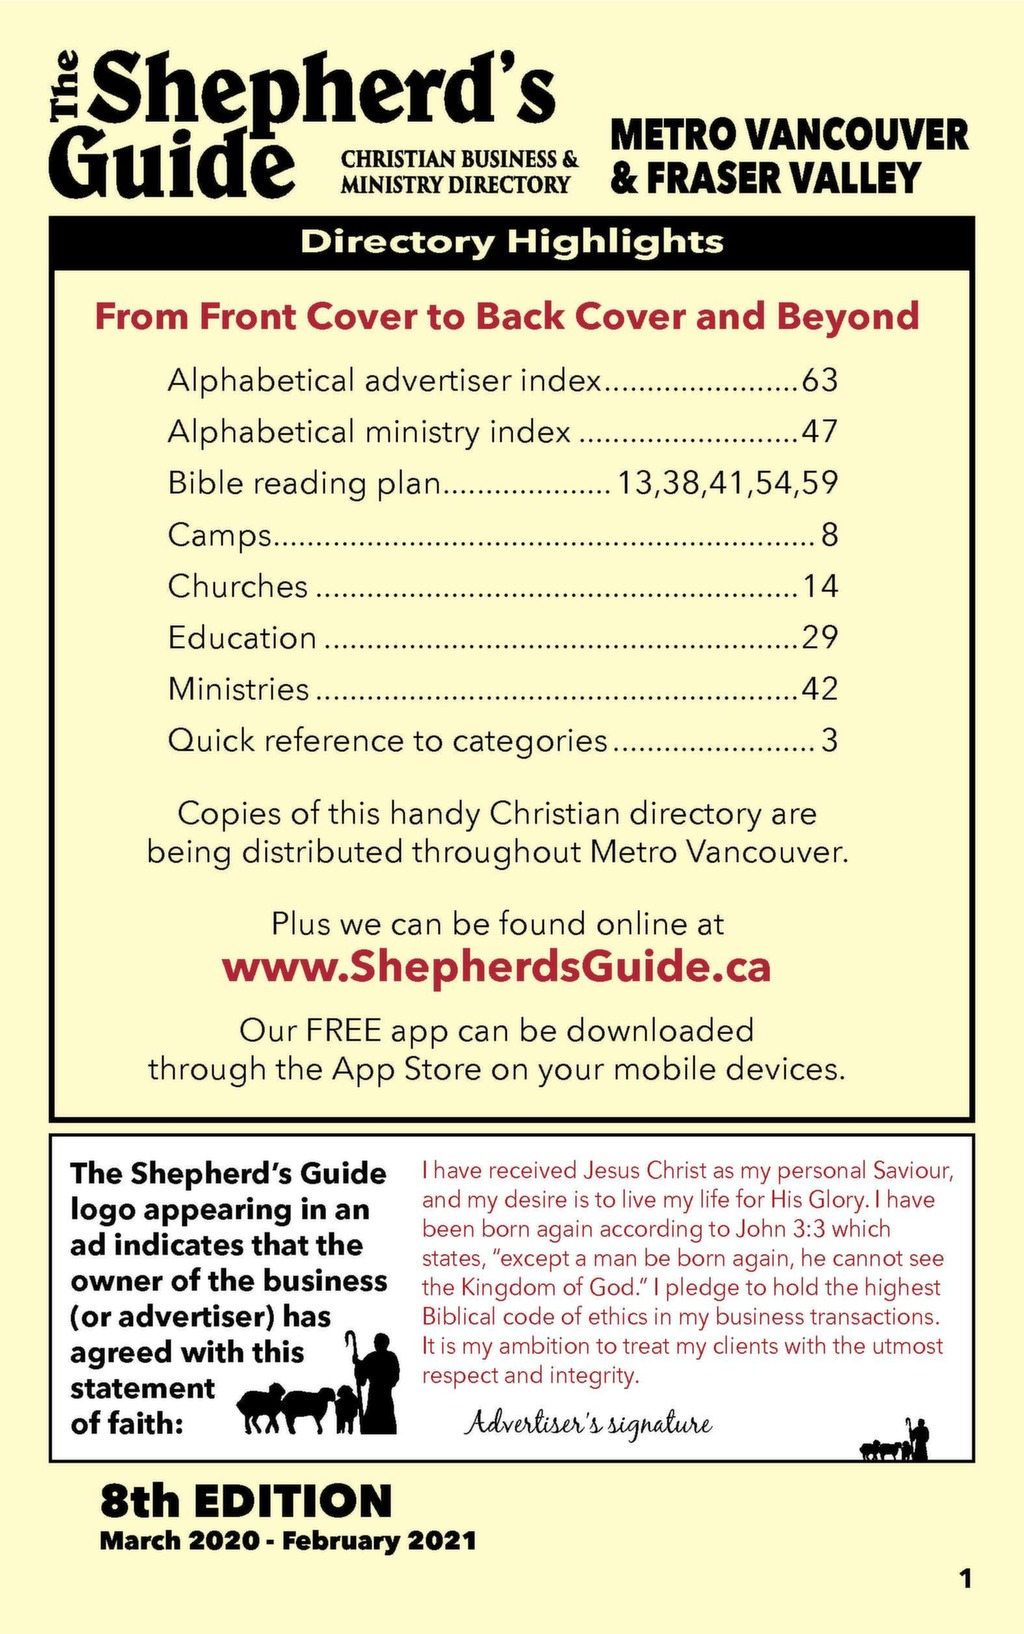 Metro Vancouver and Fraser Valley – The Shepherd's Guide